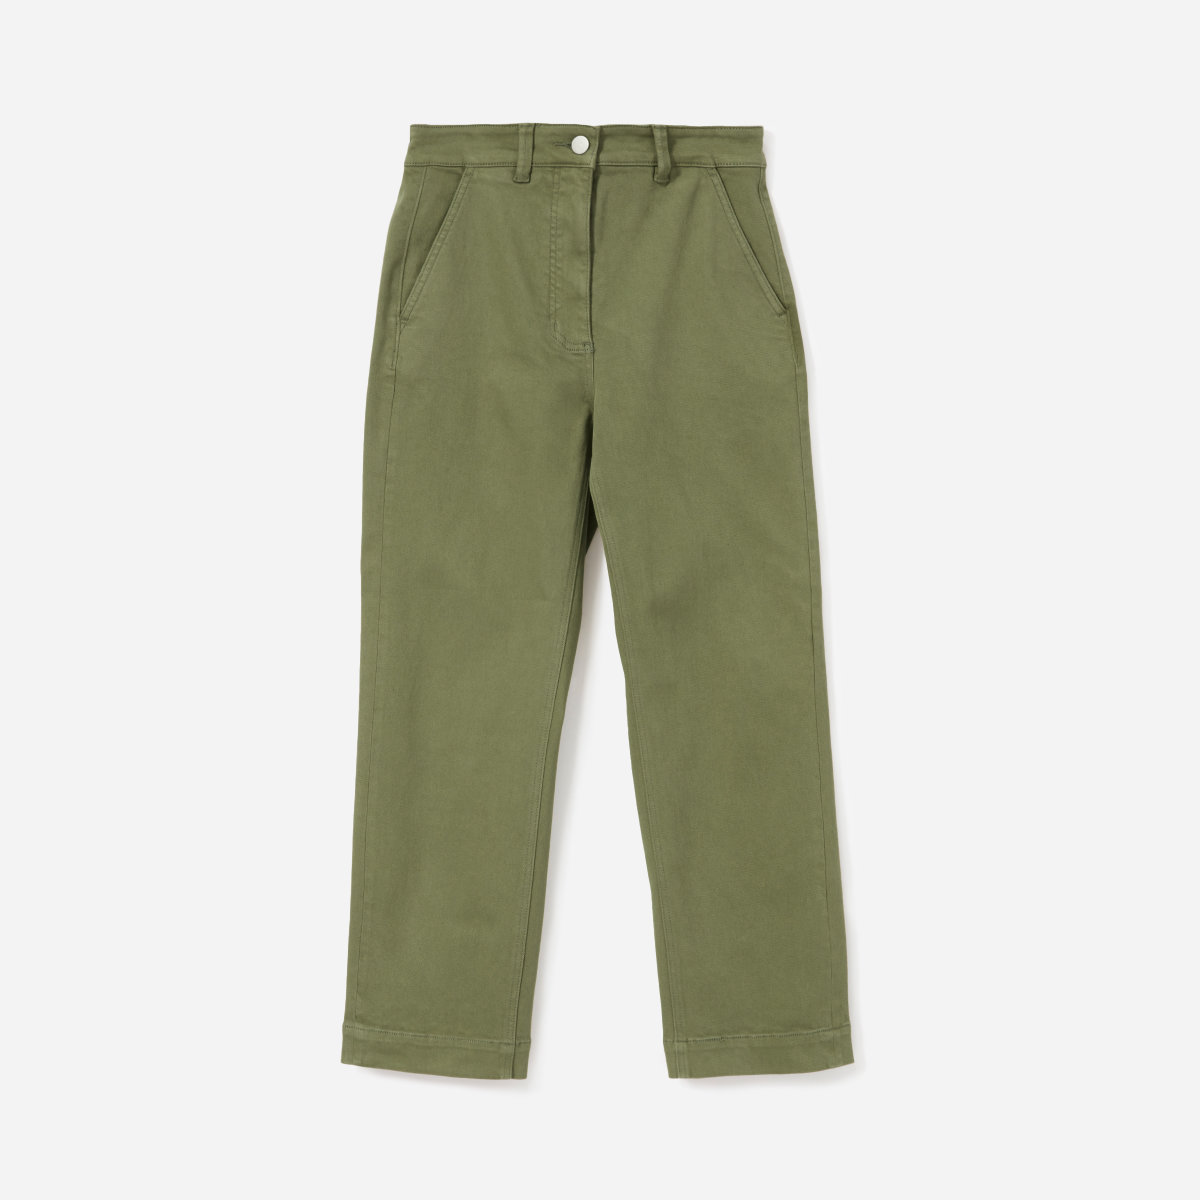 Everlane  straight leg crop pants , $68